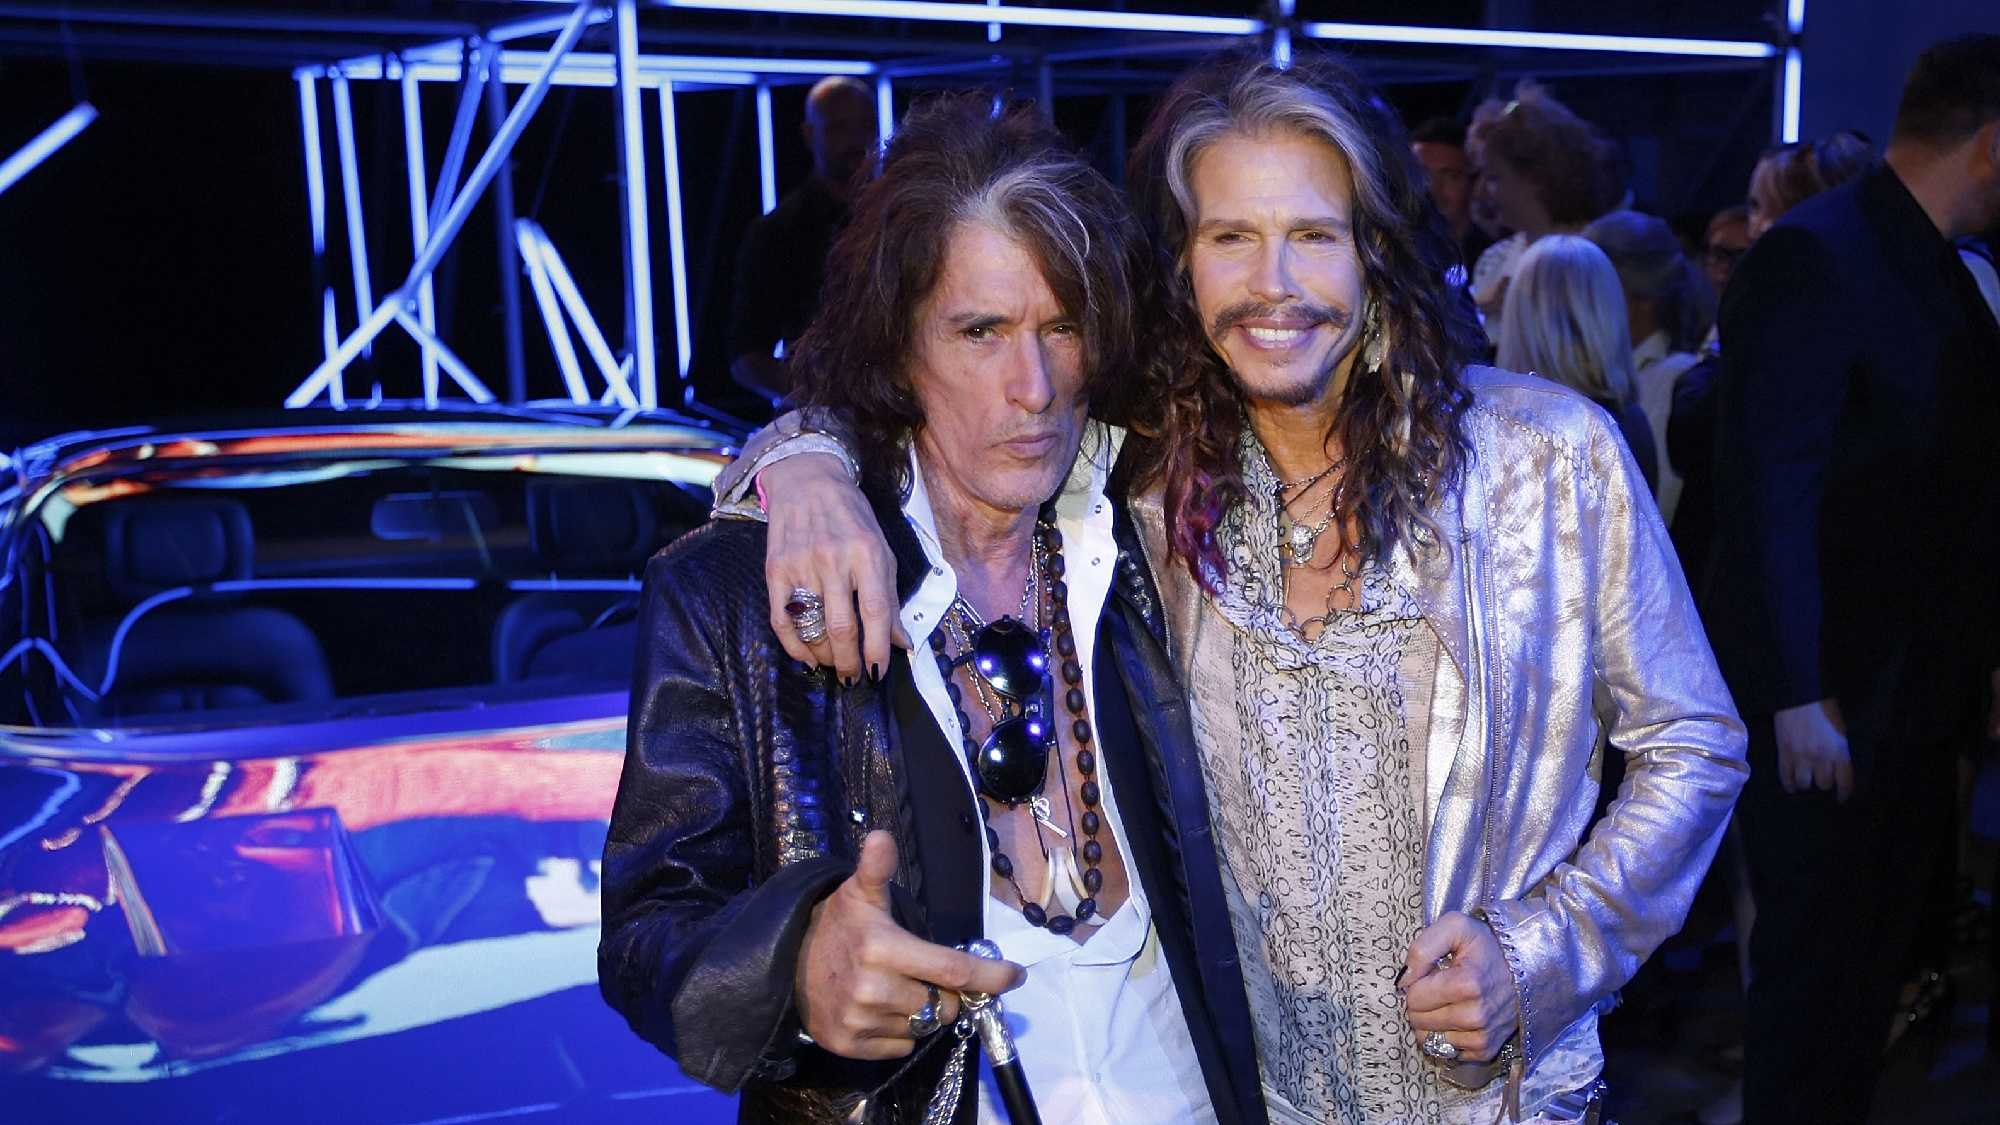 US Aerosmith rock band guitarist Joe Perry, left, and singer Steven Tyler pose as they wait for the start of the Roberto Cavalli men's Spring-Summer 2015 collection, part of the Milan Fashion Week, unveiled in Milan, Italy, Tuesday, June 24, 2014.